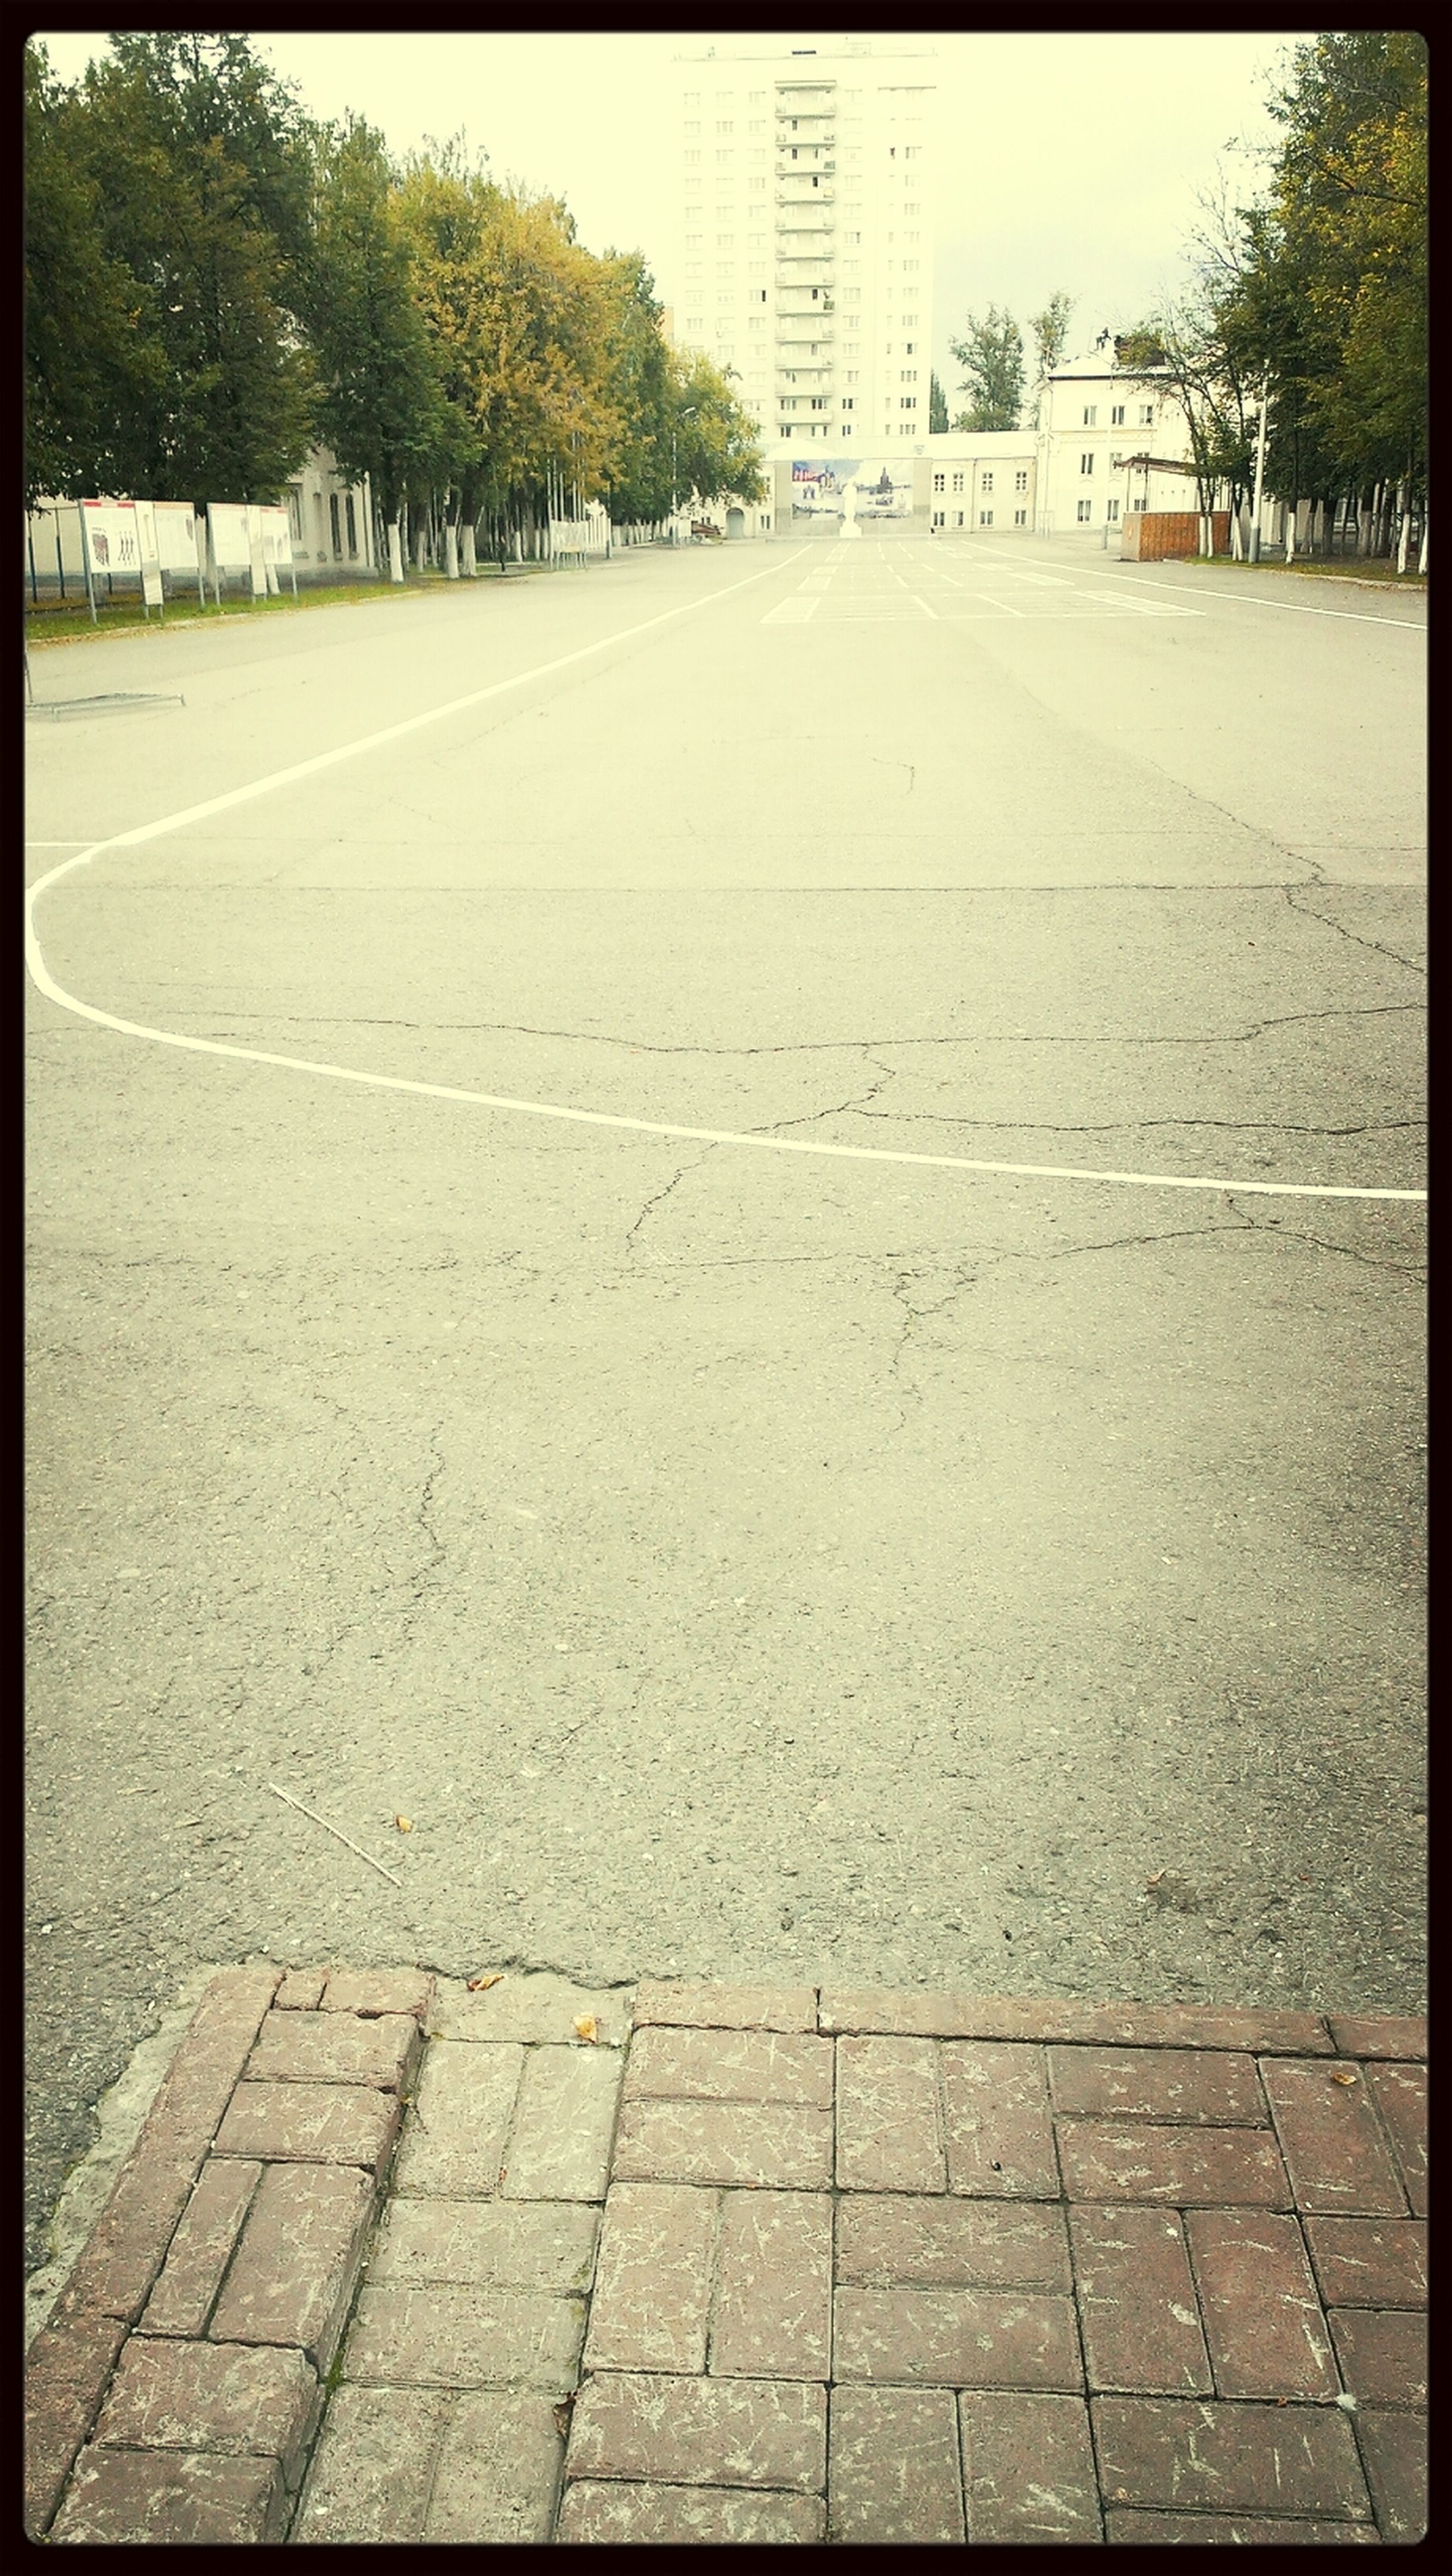 transfer print, the way forward, auto post production filter, diminishing perspective, building exterior, street, built structure, architecture, road, cobblestone, footpath, tree, vanishing point, day, empty, walkway, sunlight, outdoors, transportation, sidewalk